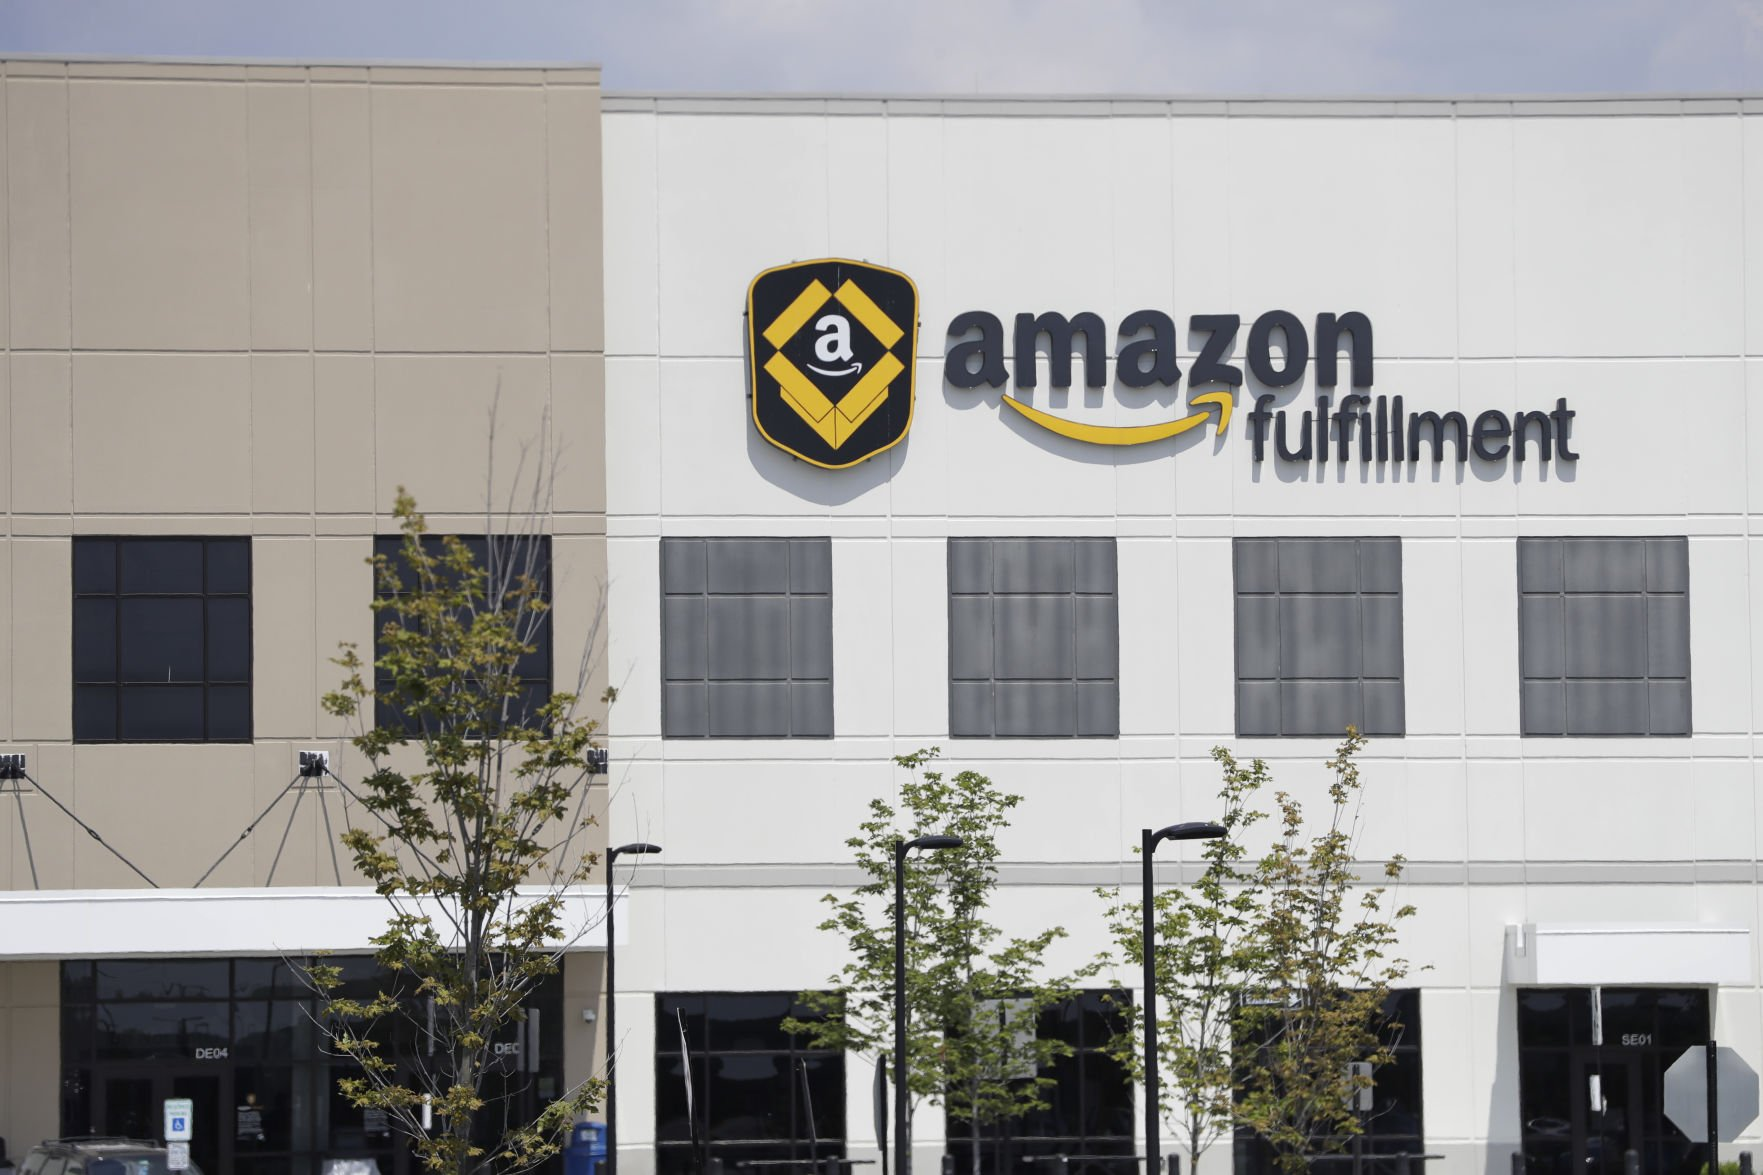 Amazon Announces First Fulfillment Center in New York, Creating 2250 Full-Time Jobs